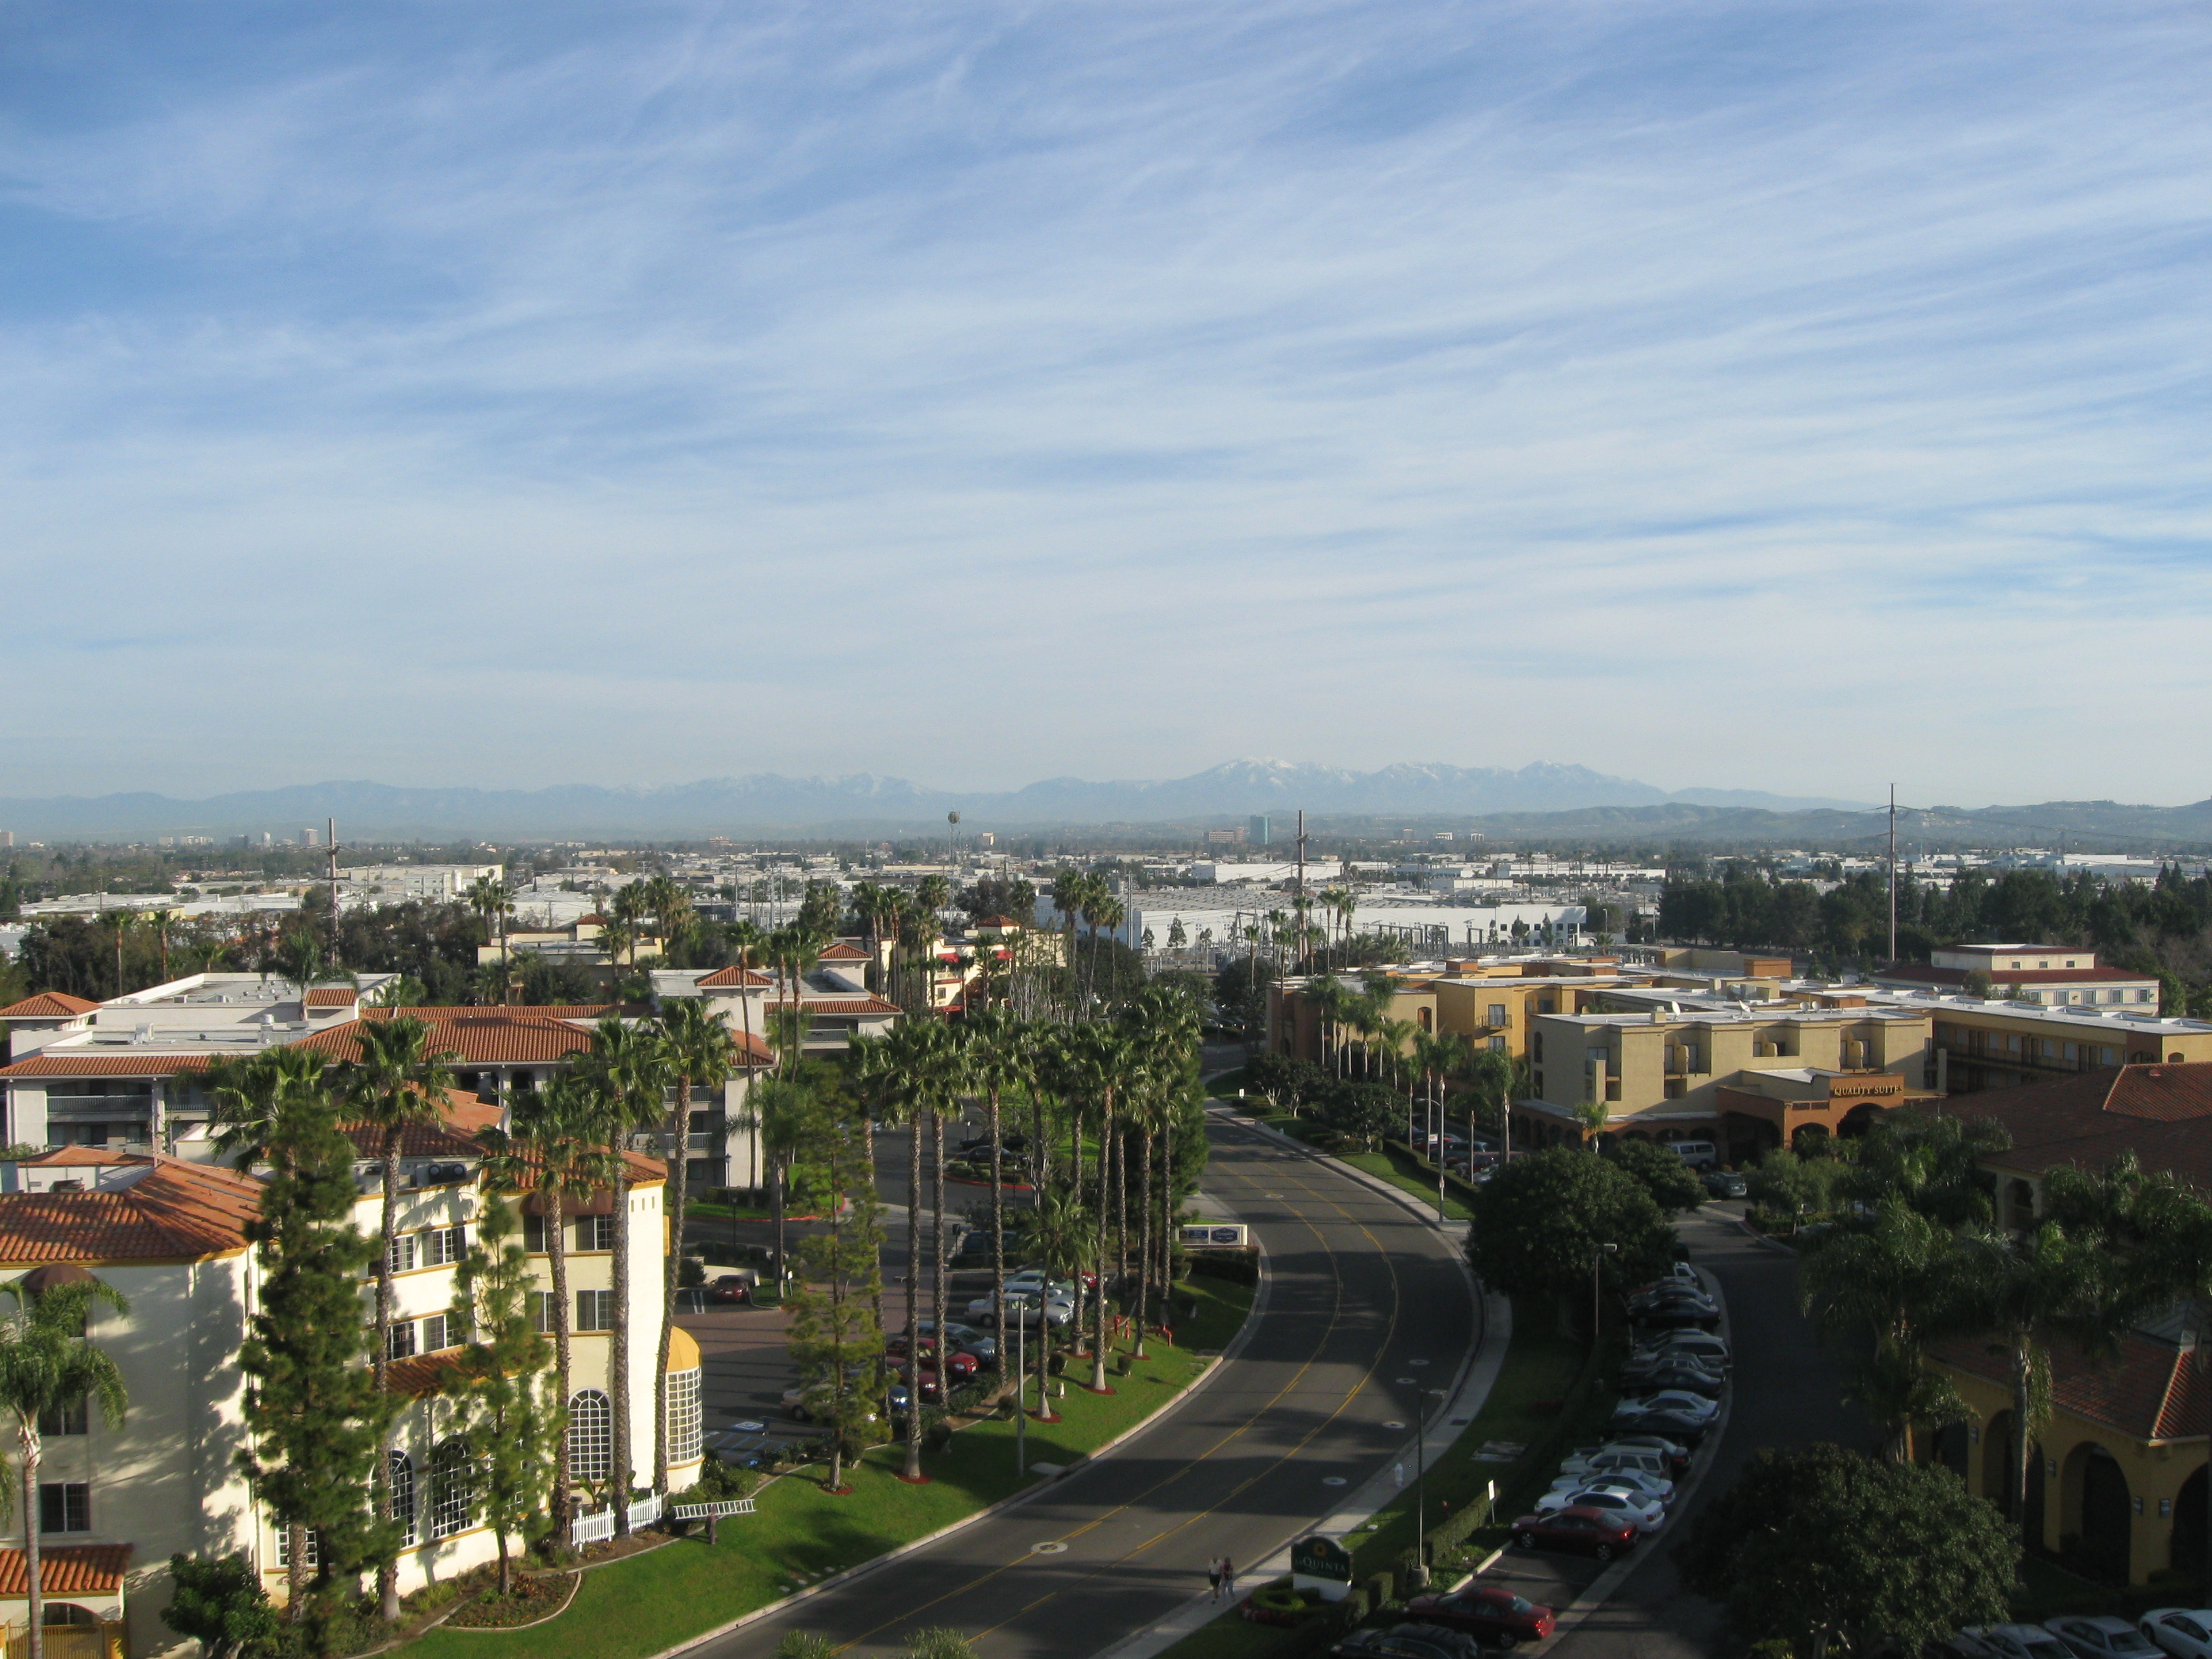 Review Embassy Suites Santa Ana Ca Reviews For Families